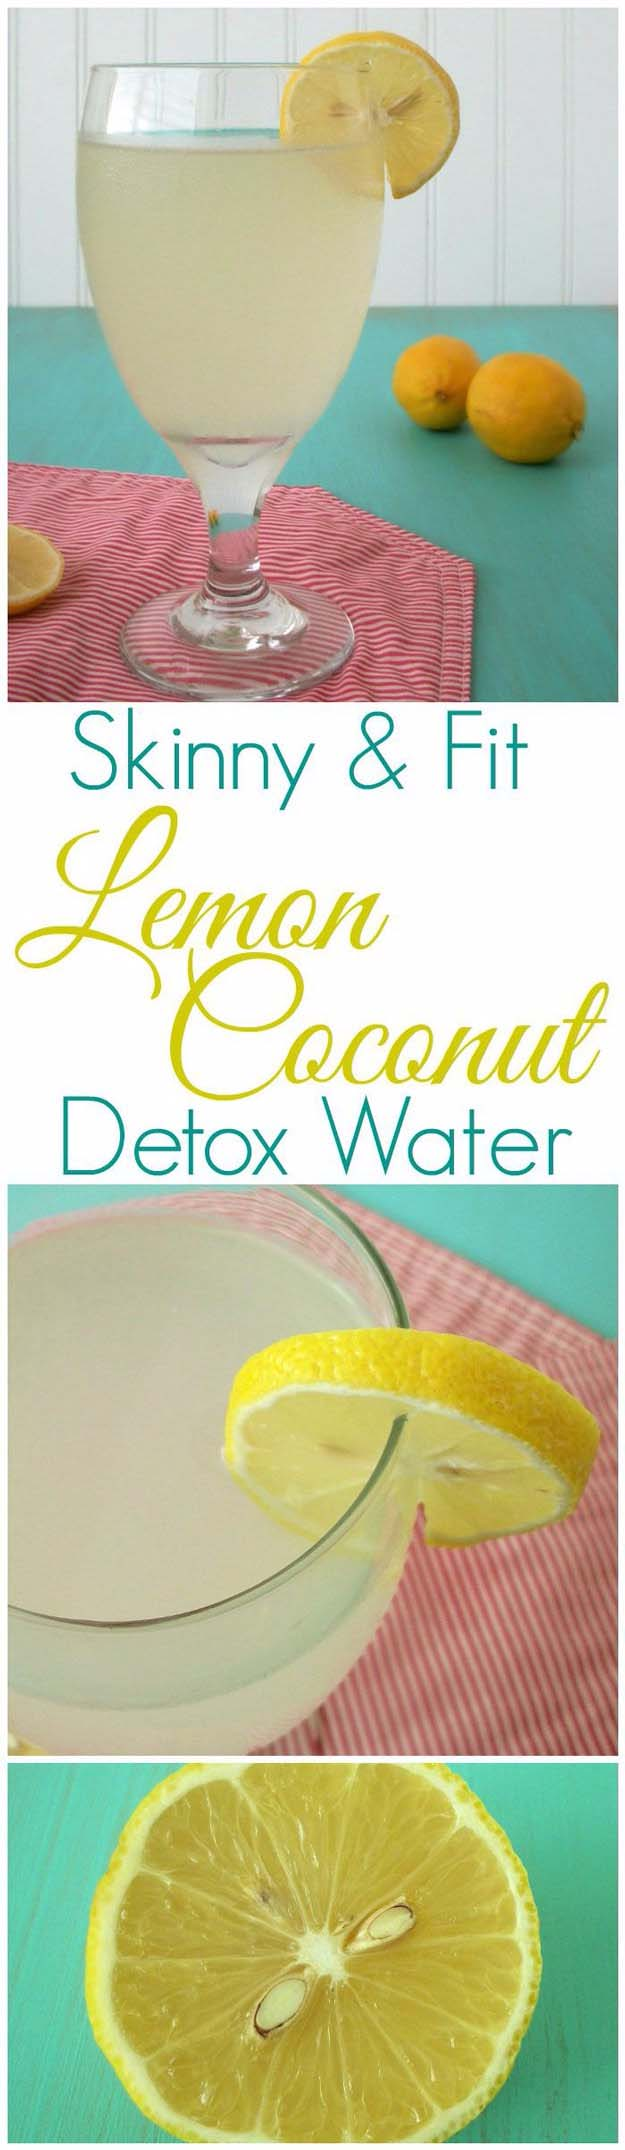 31 Detox Water Recipes for Drinks To Cleanse Skin and Body. Easy to Make Waters and Tea Promote Health, Diet and Support Weightloss | Skinny & Fit Lemon Coconut Detox Water Recipe #detox #recipes #detoxwater #healthy